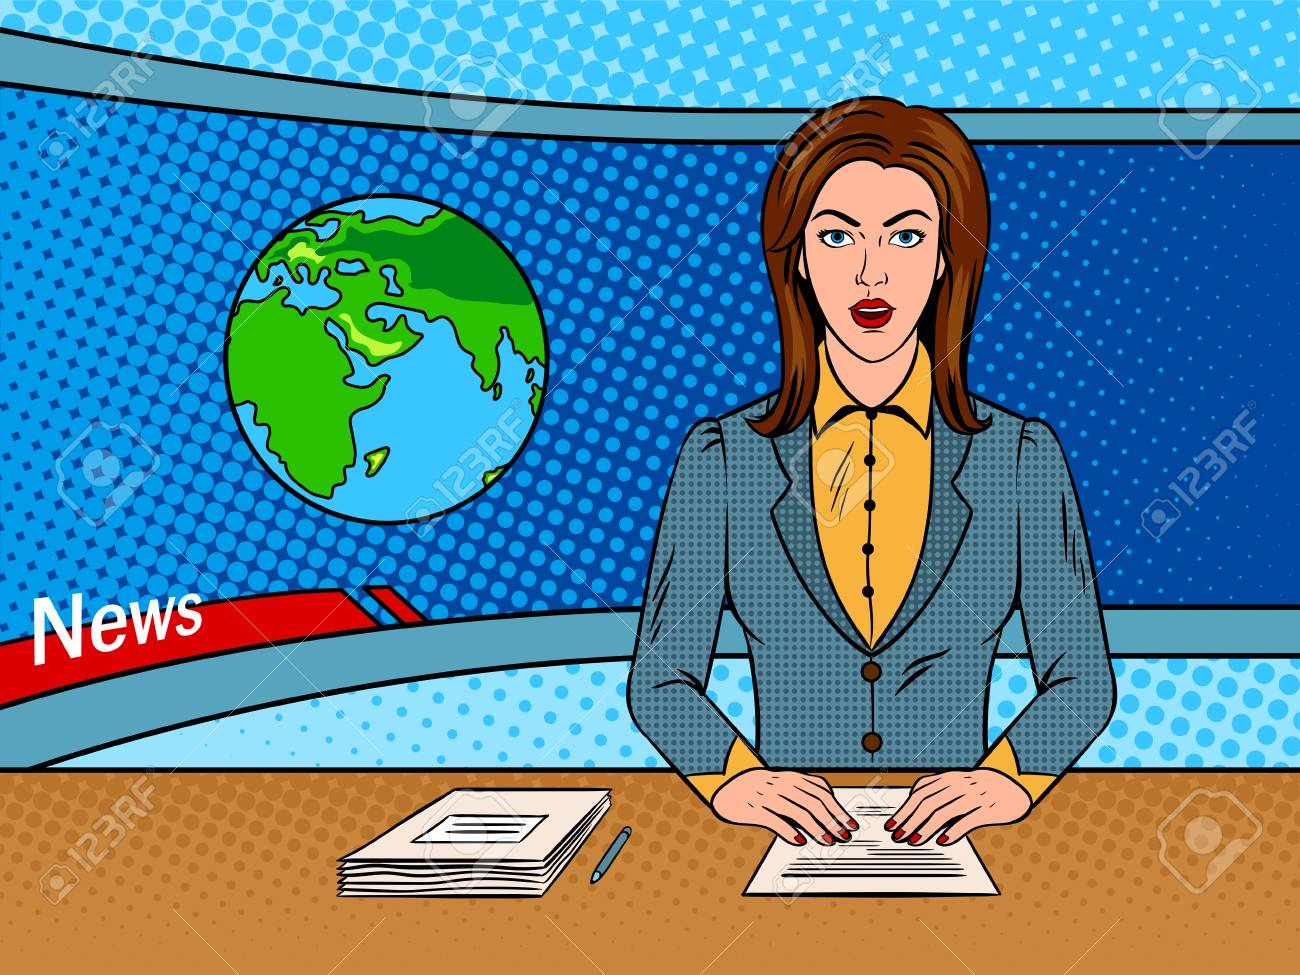 Newsreader reads news on TV pop art vector.